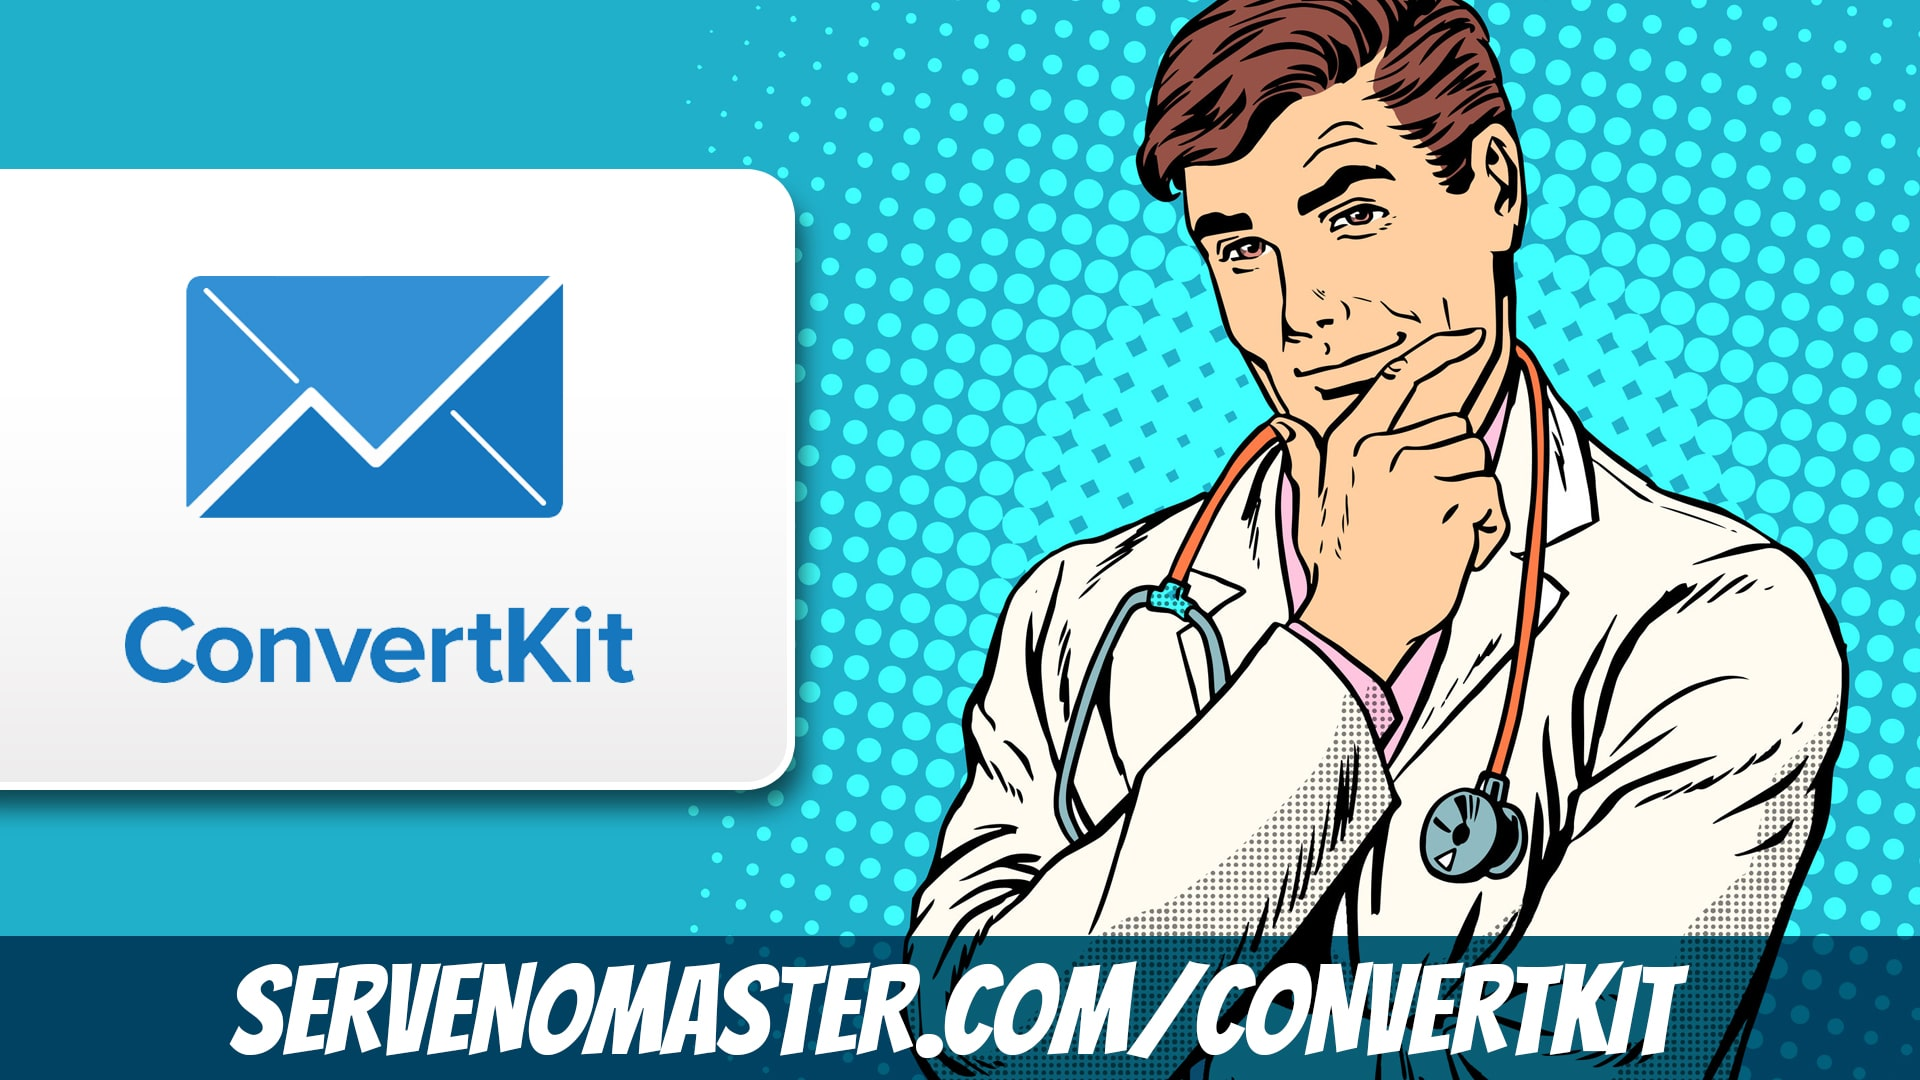 convert kit affiliate banner a doctor conversion animated illustration